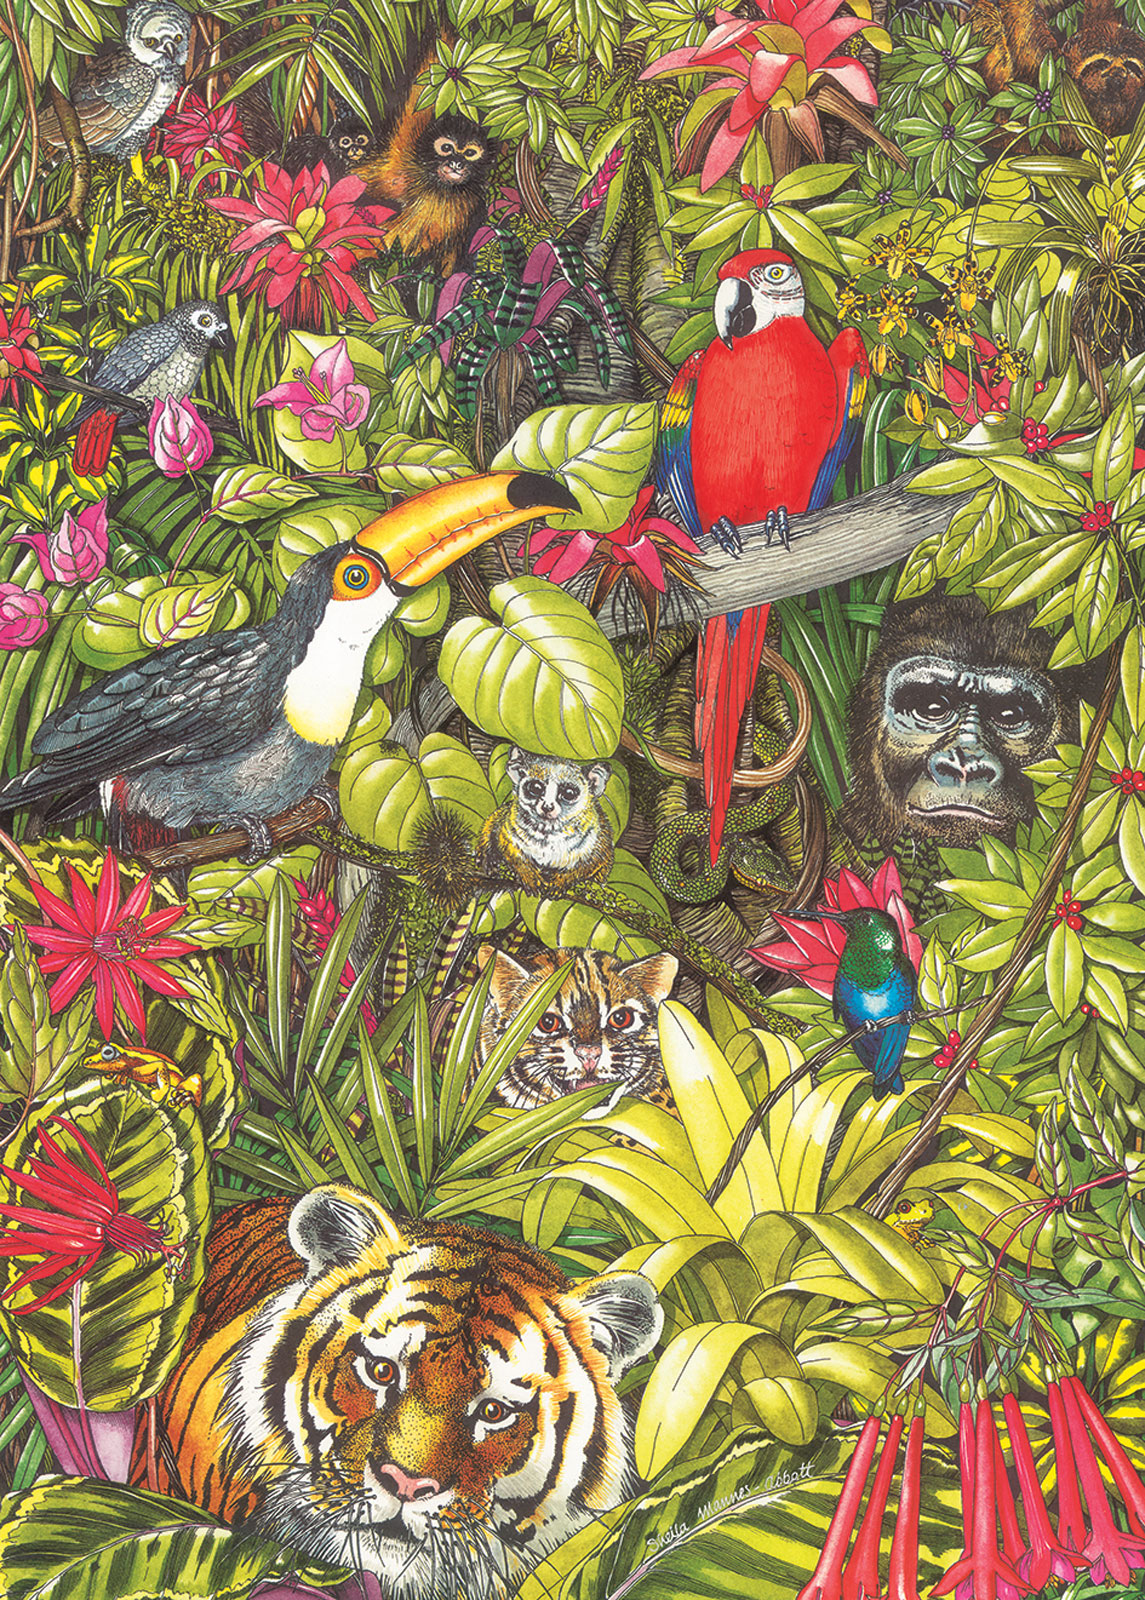 otter-house-puzzle-rainforests-of-the-world-1000-teile-puzzle-otter-house-puzzle-74128